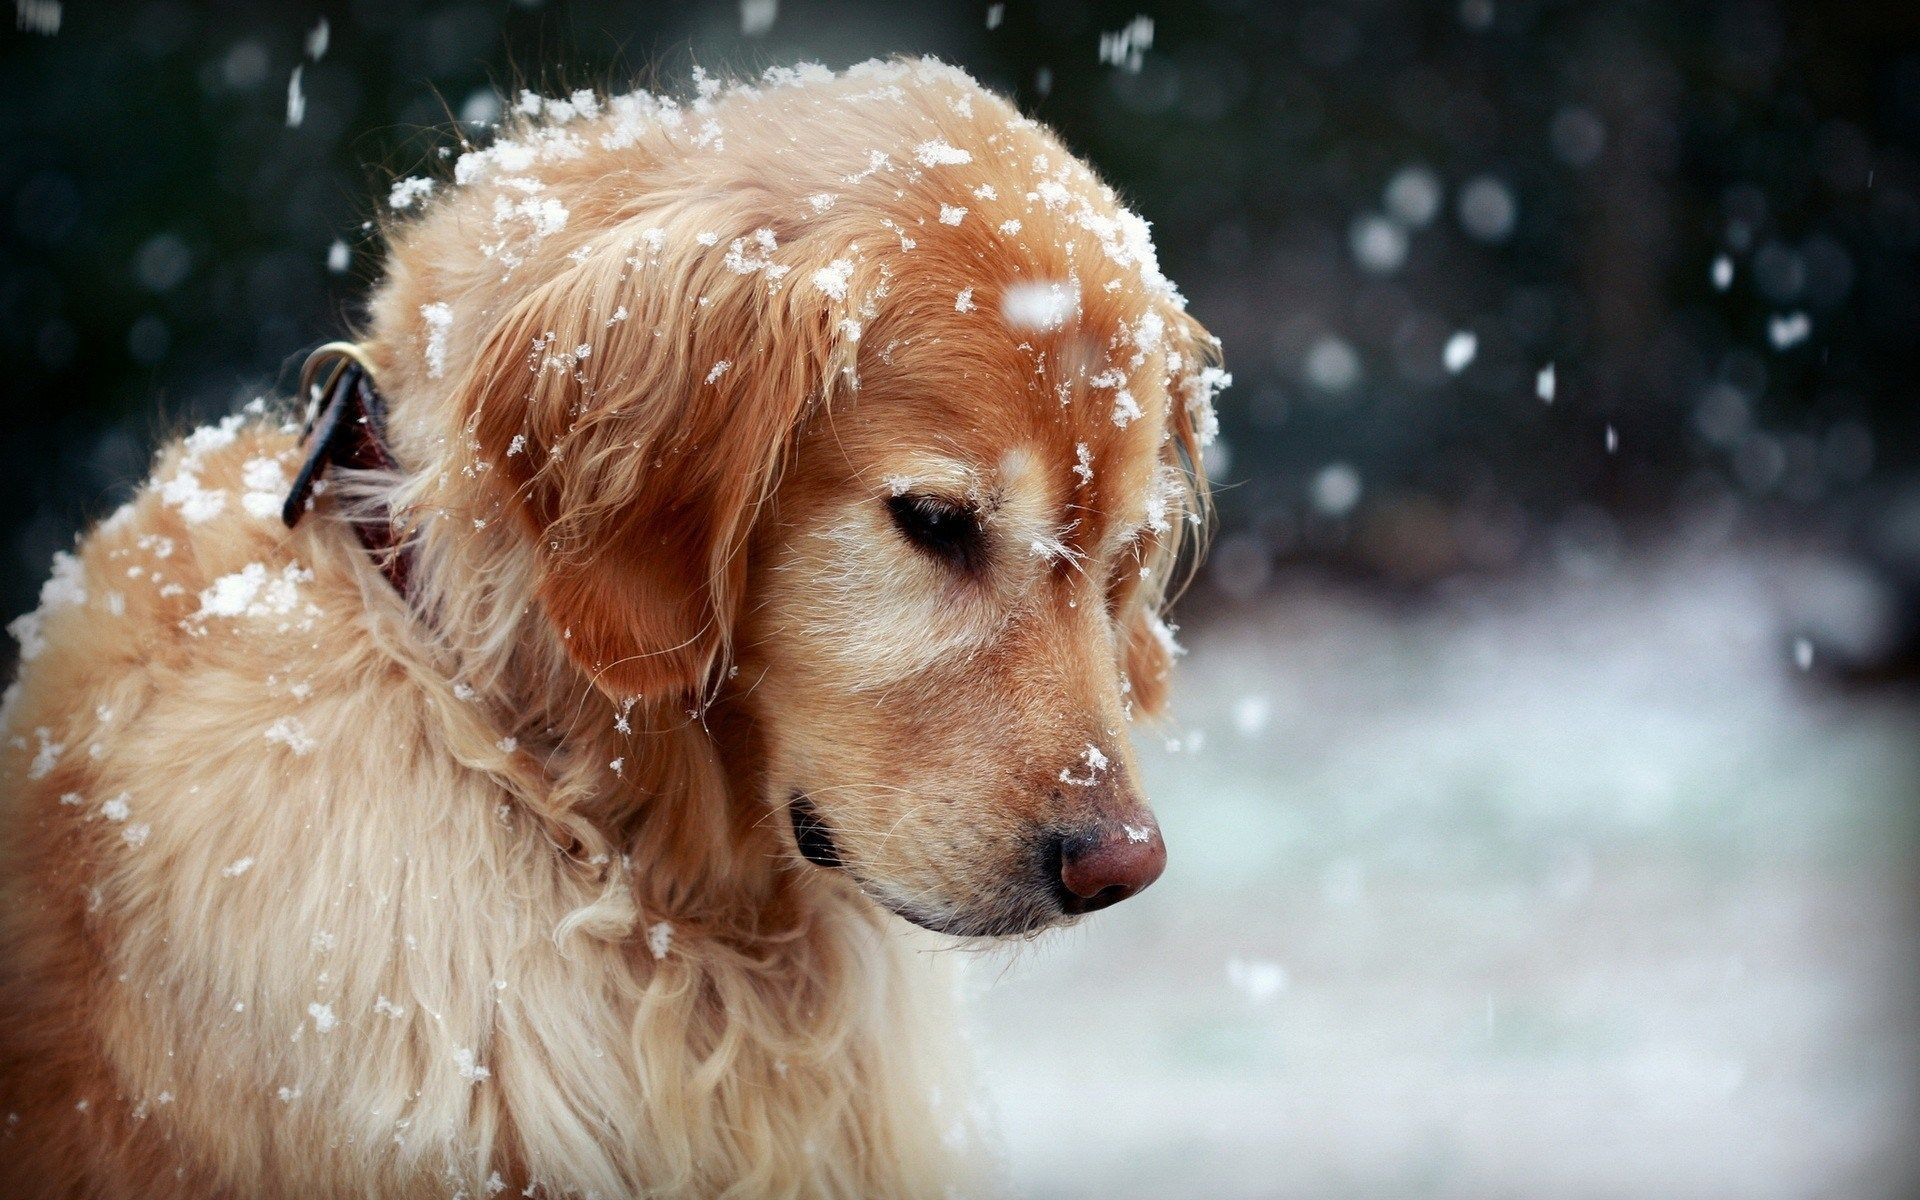 Winter Dog Wallpapers   Top Winter Dog Backgrounds 1920x1200